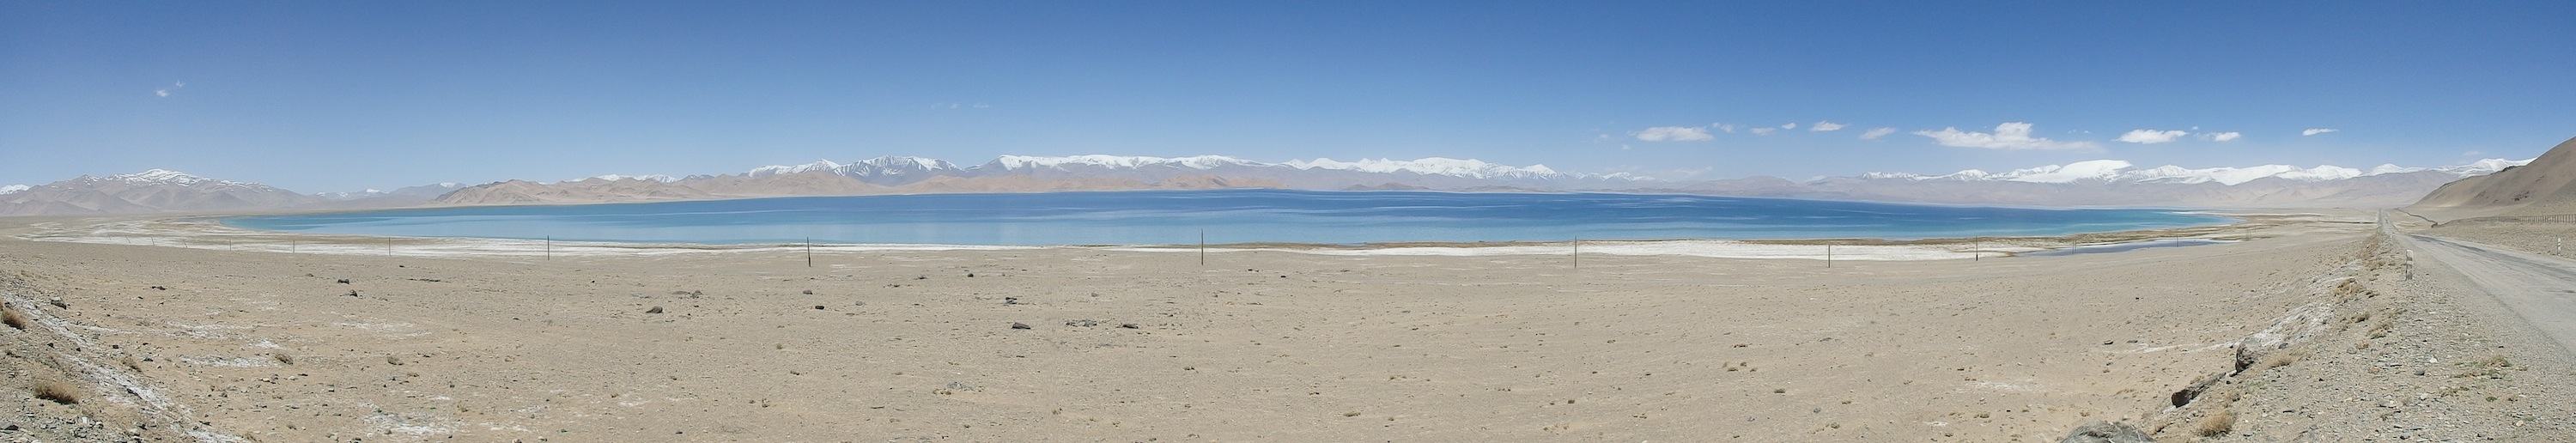 Karakol Lake on the Pamir Highway Ttajikistan)